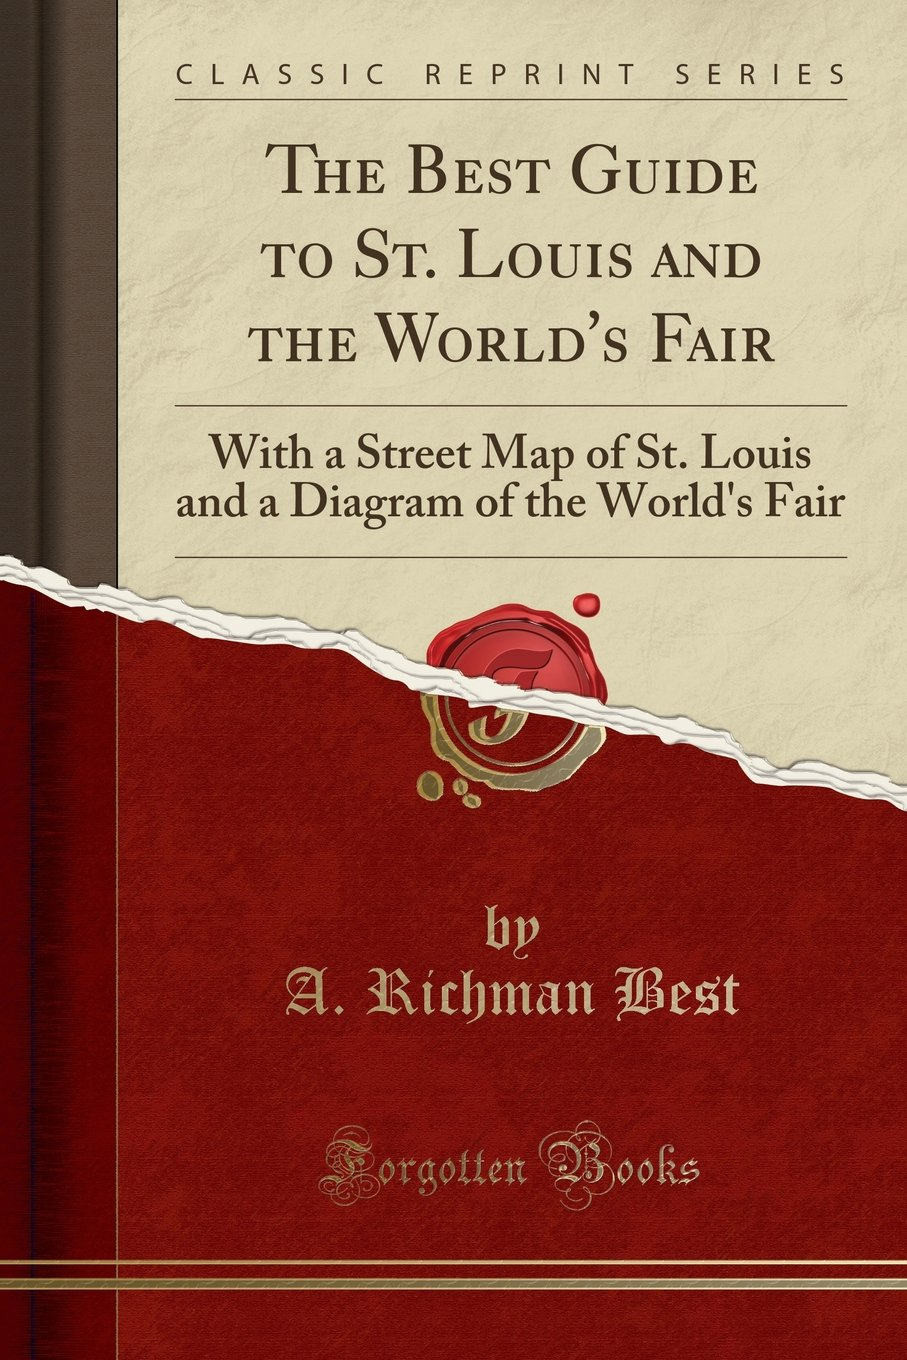 Read Online The Best Guide to St. Louis and the World's Fair: With a Street Map of St. Louis and a Diagram of the World's Fair (Classic Reprint) ebook